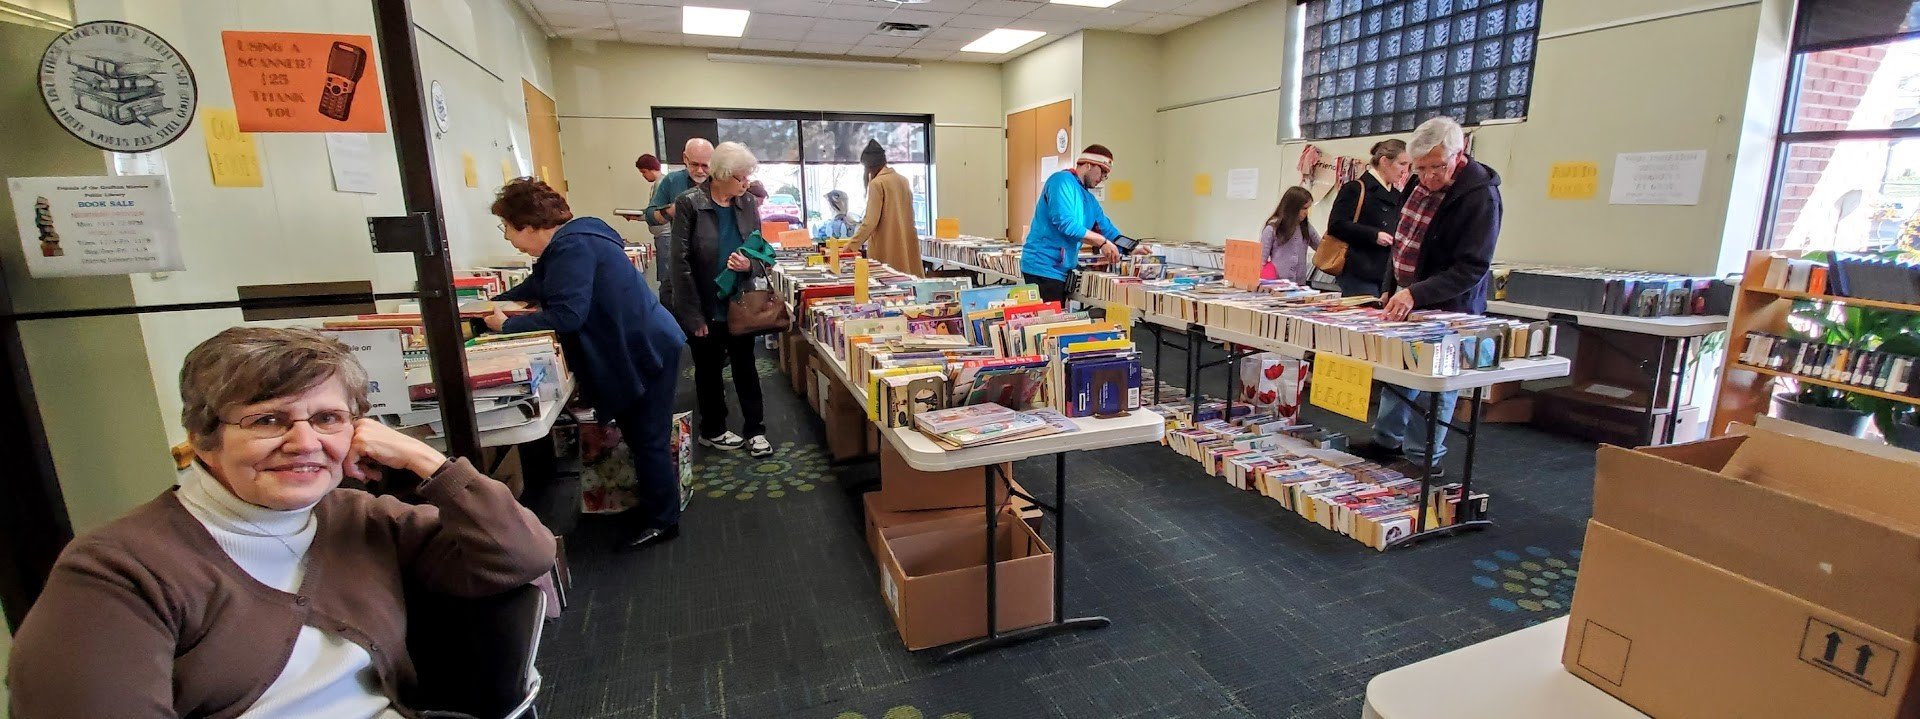 Book Sale in Library